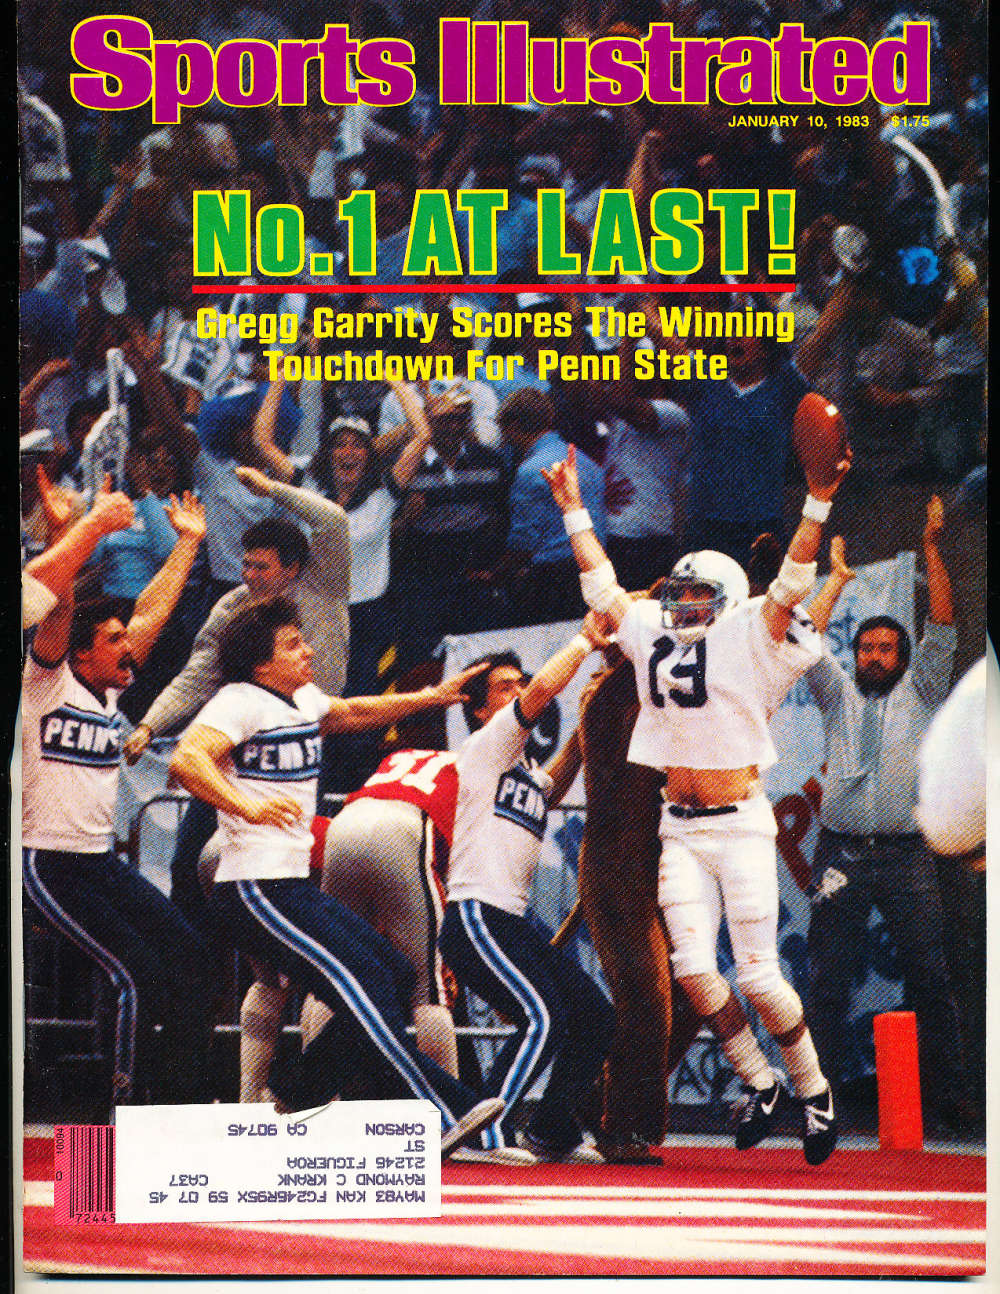 1/10 1983 Sports Illustrated Penn State Gregg Garrity  si6